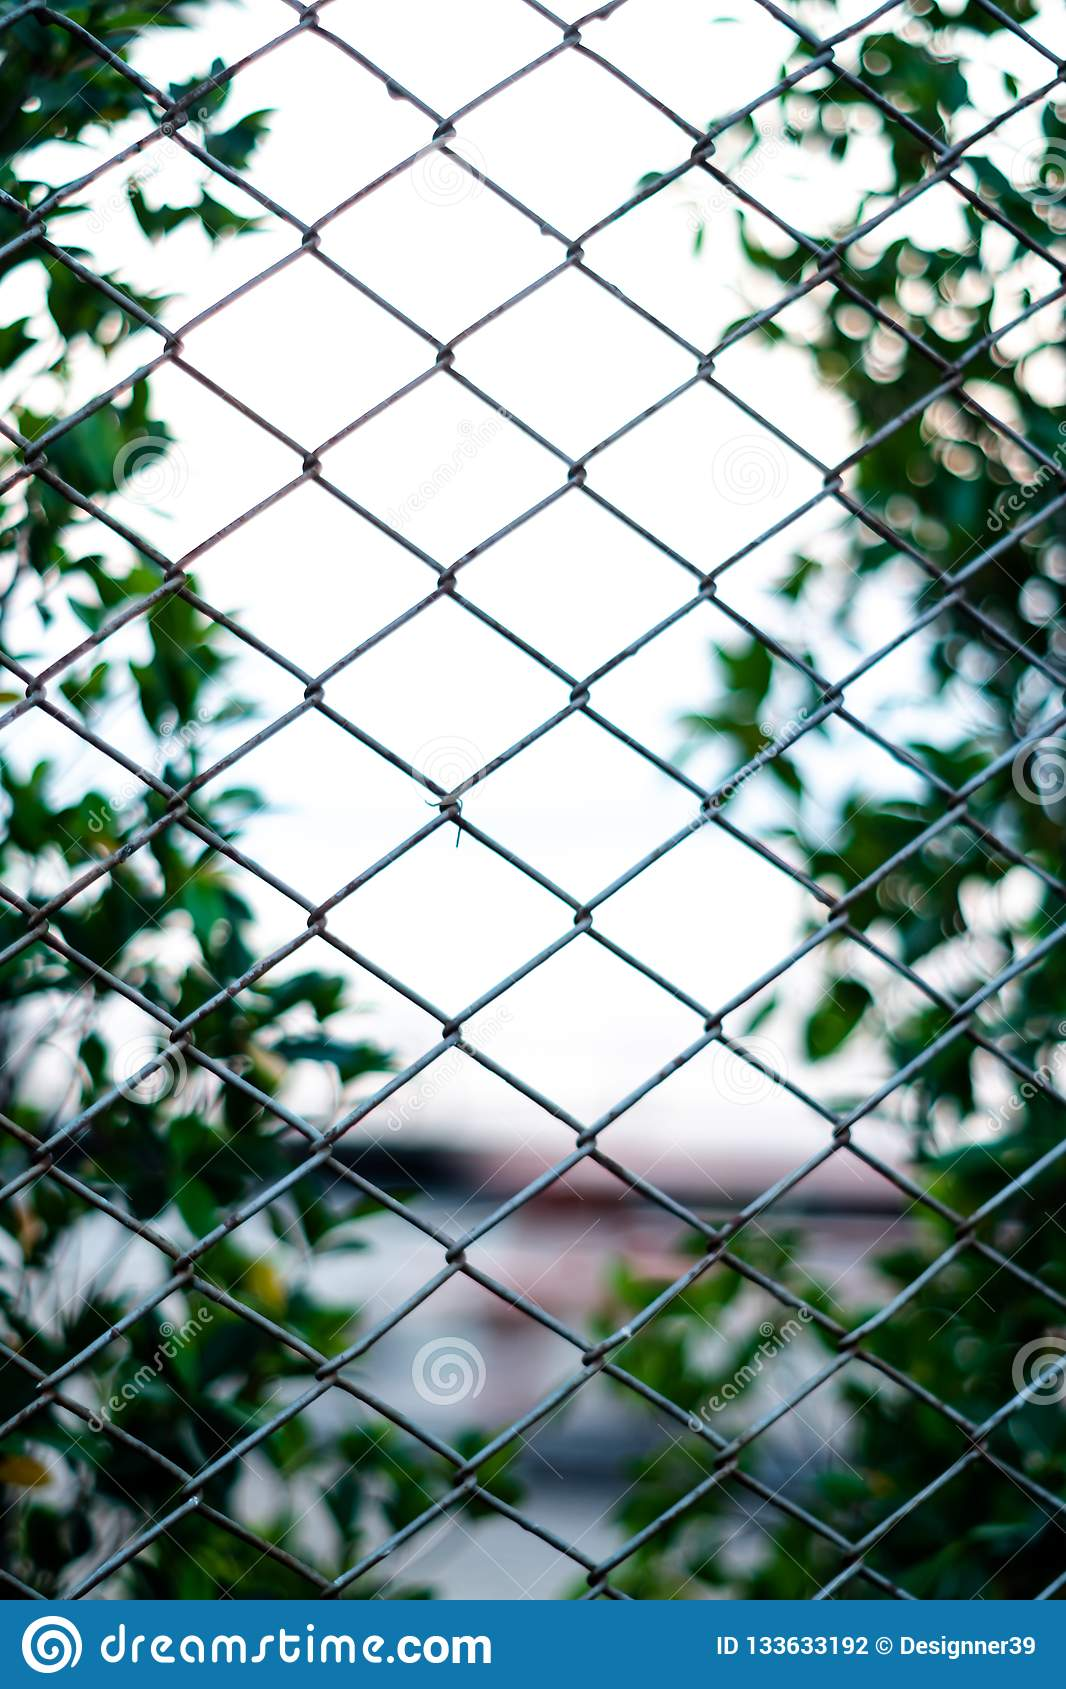 Net and garden background blur and.